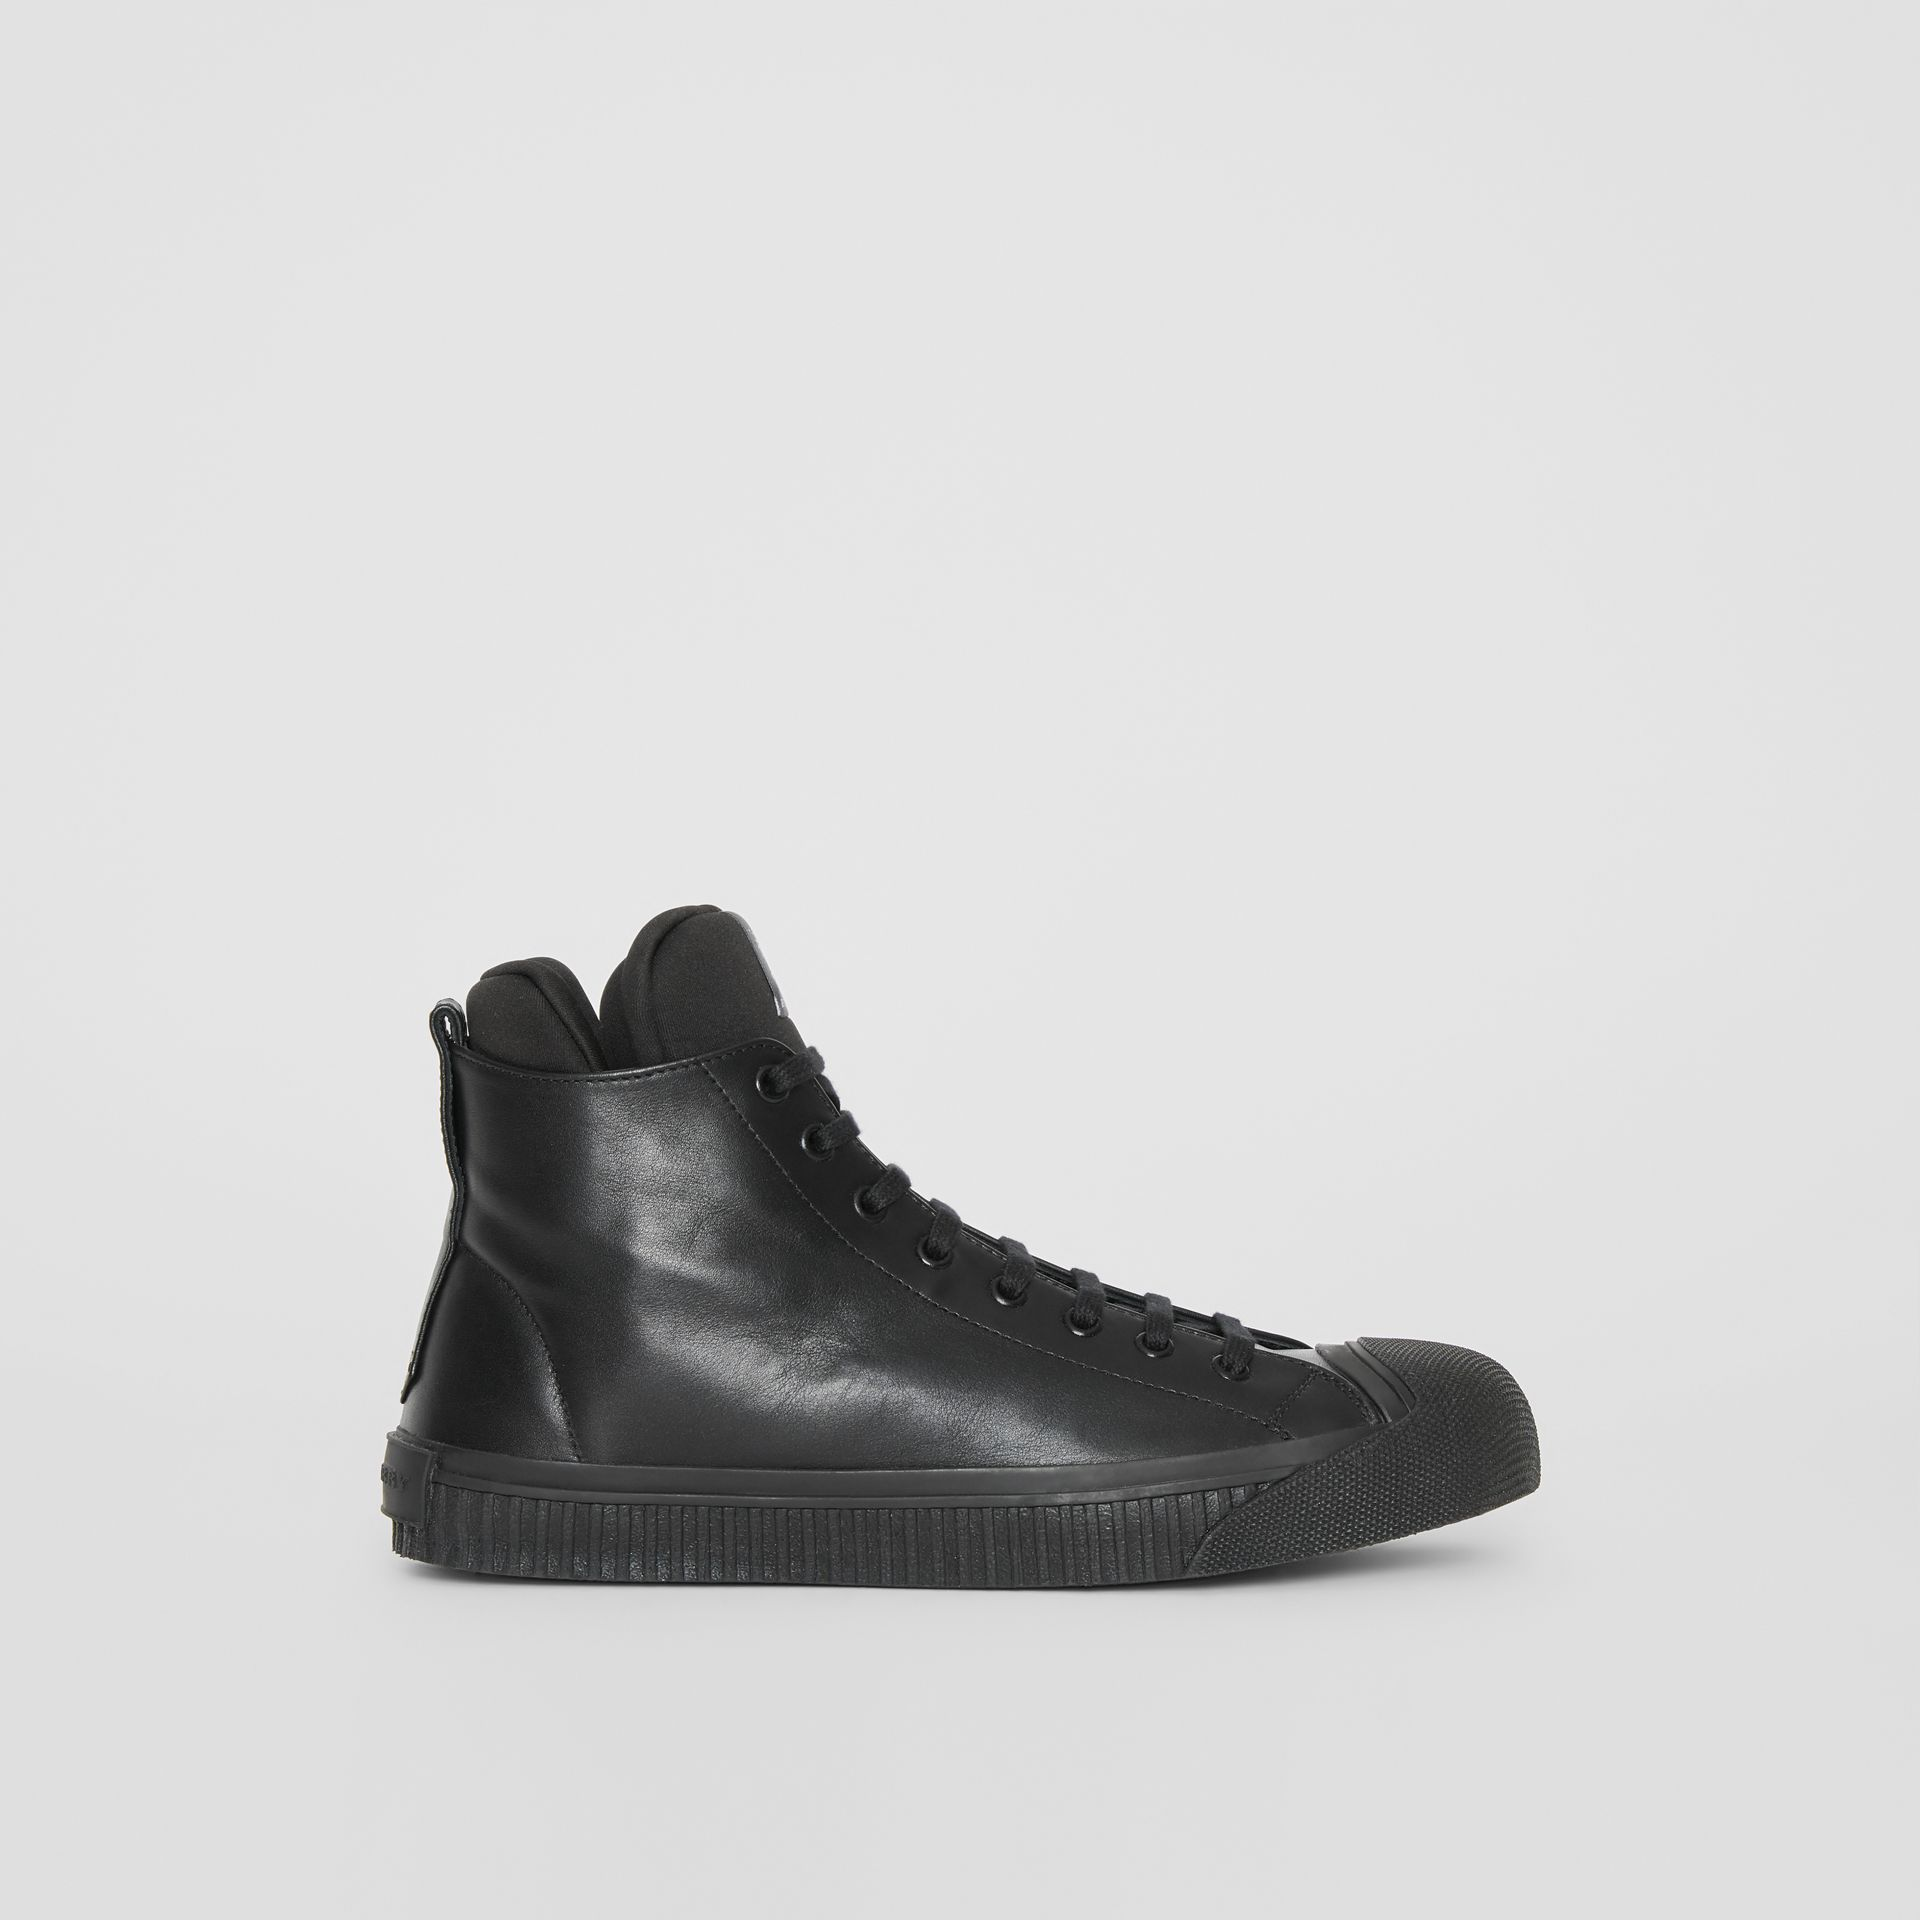 Leather and Neoprene High-top Sneakers in Black - Men | Burberry - gallery image 4